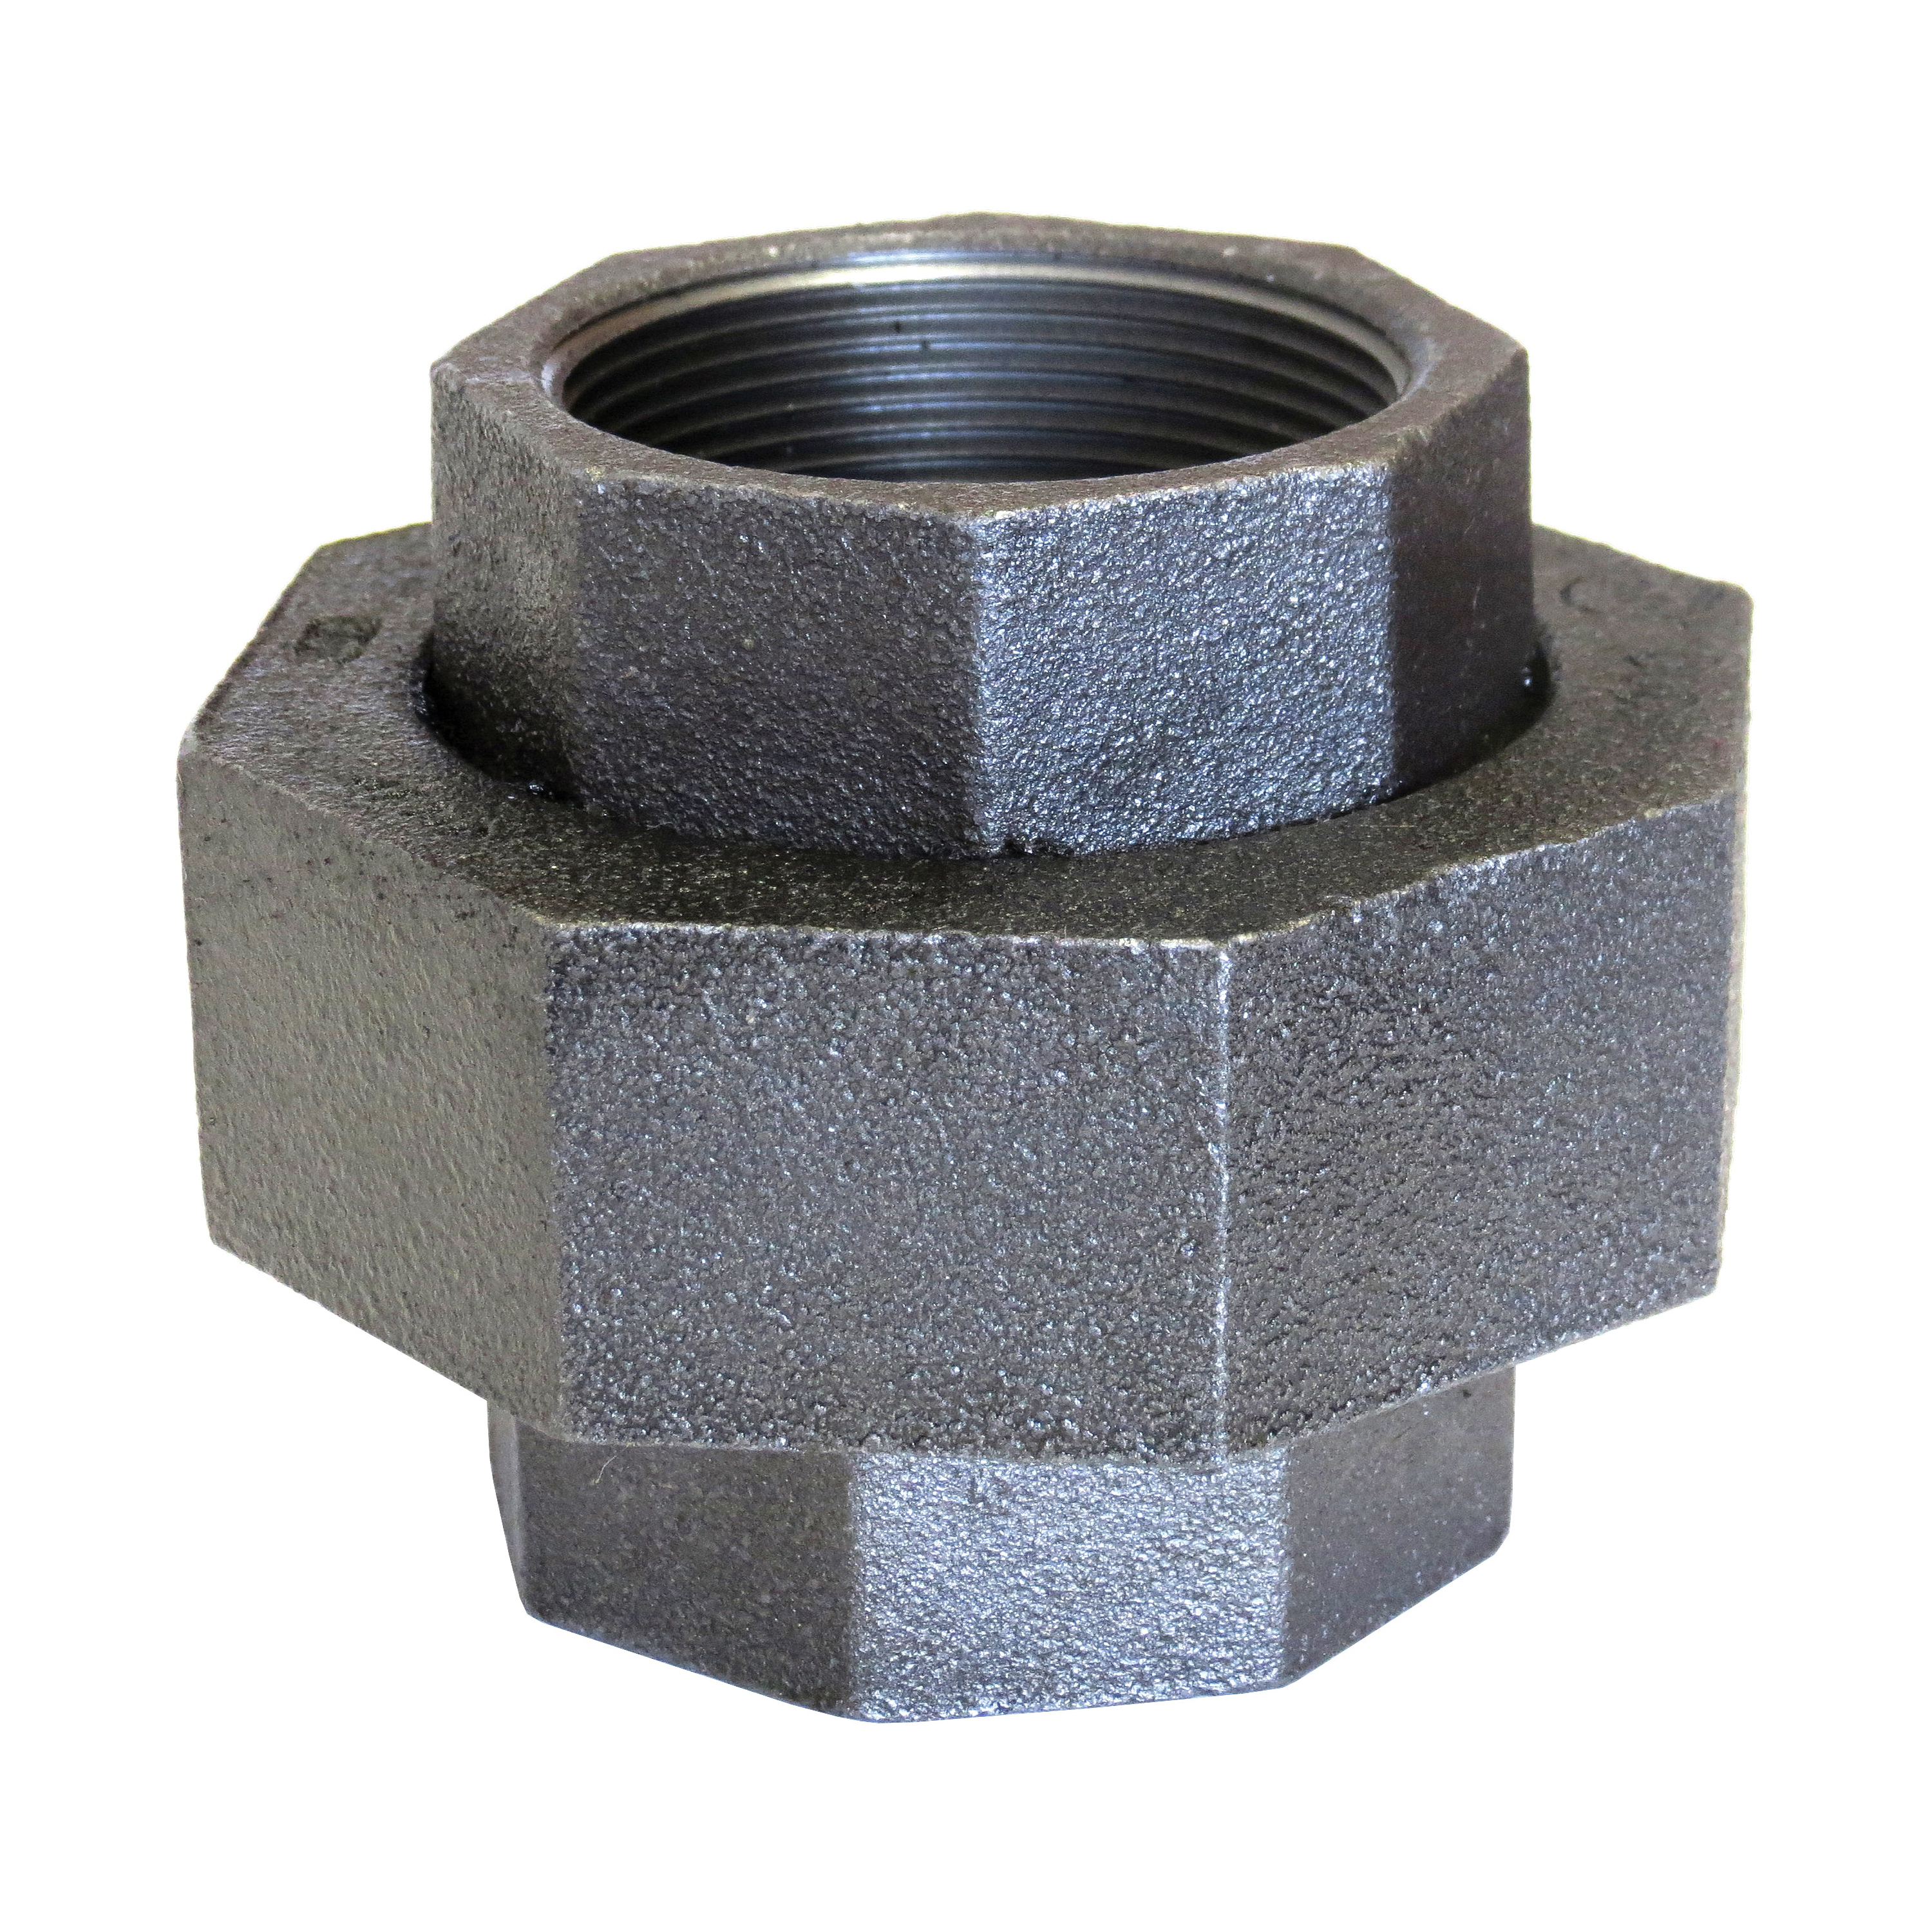 Anvil® 0313822769 FIG 459 Ground Joint Pipe Union, 2 in, NPT, 300 lb, Malleable Iron, Galvanized, Domestic